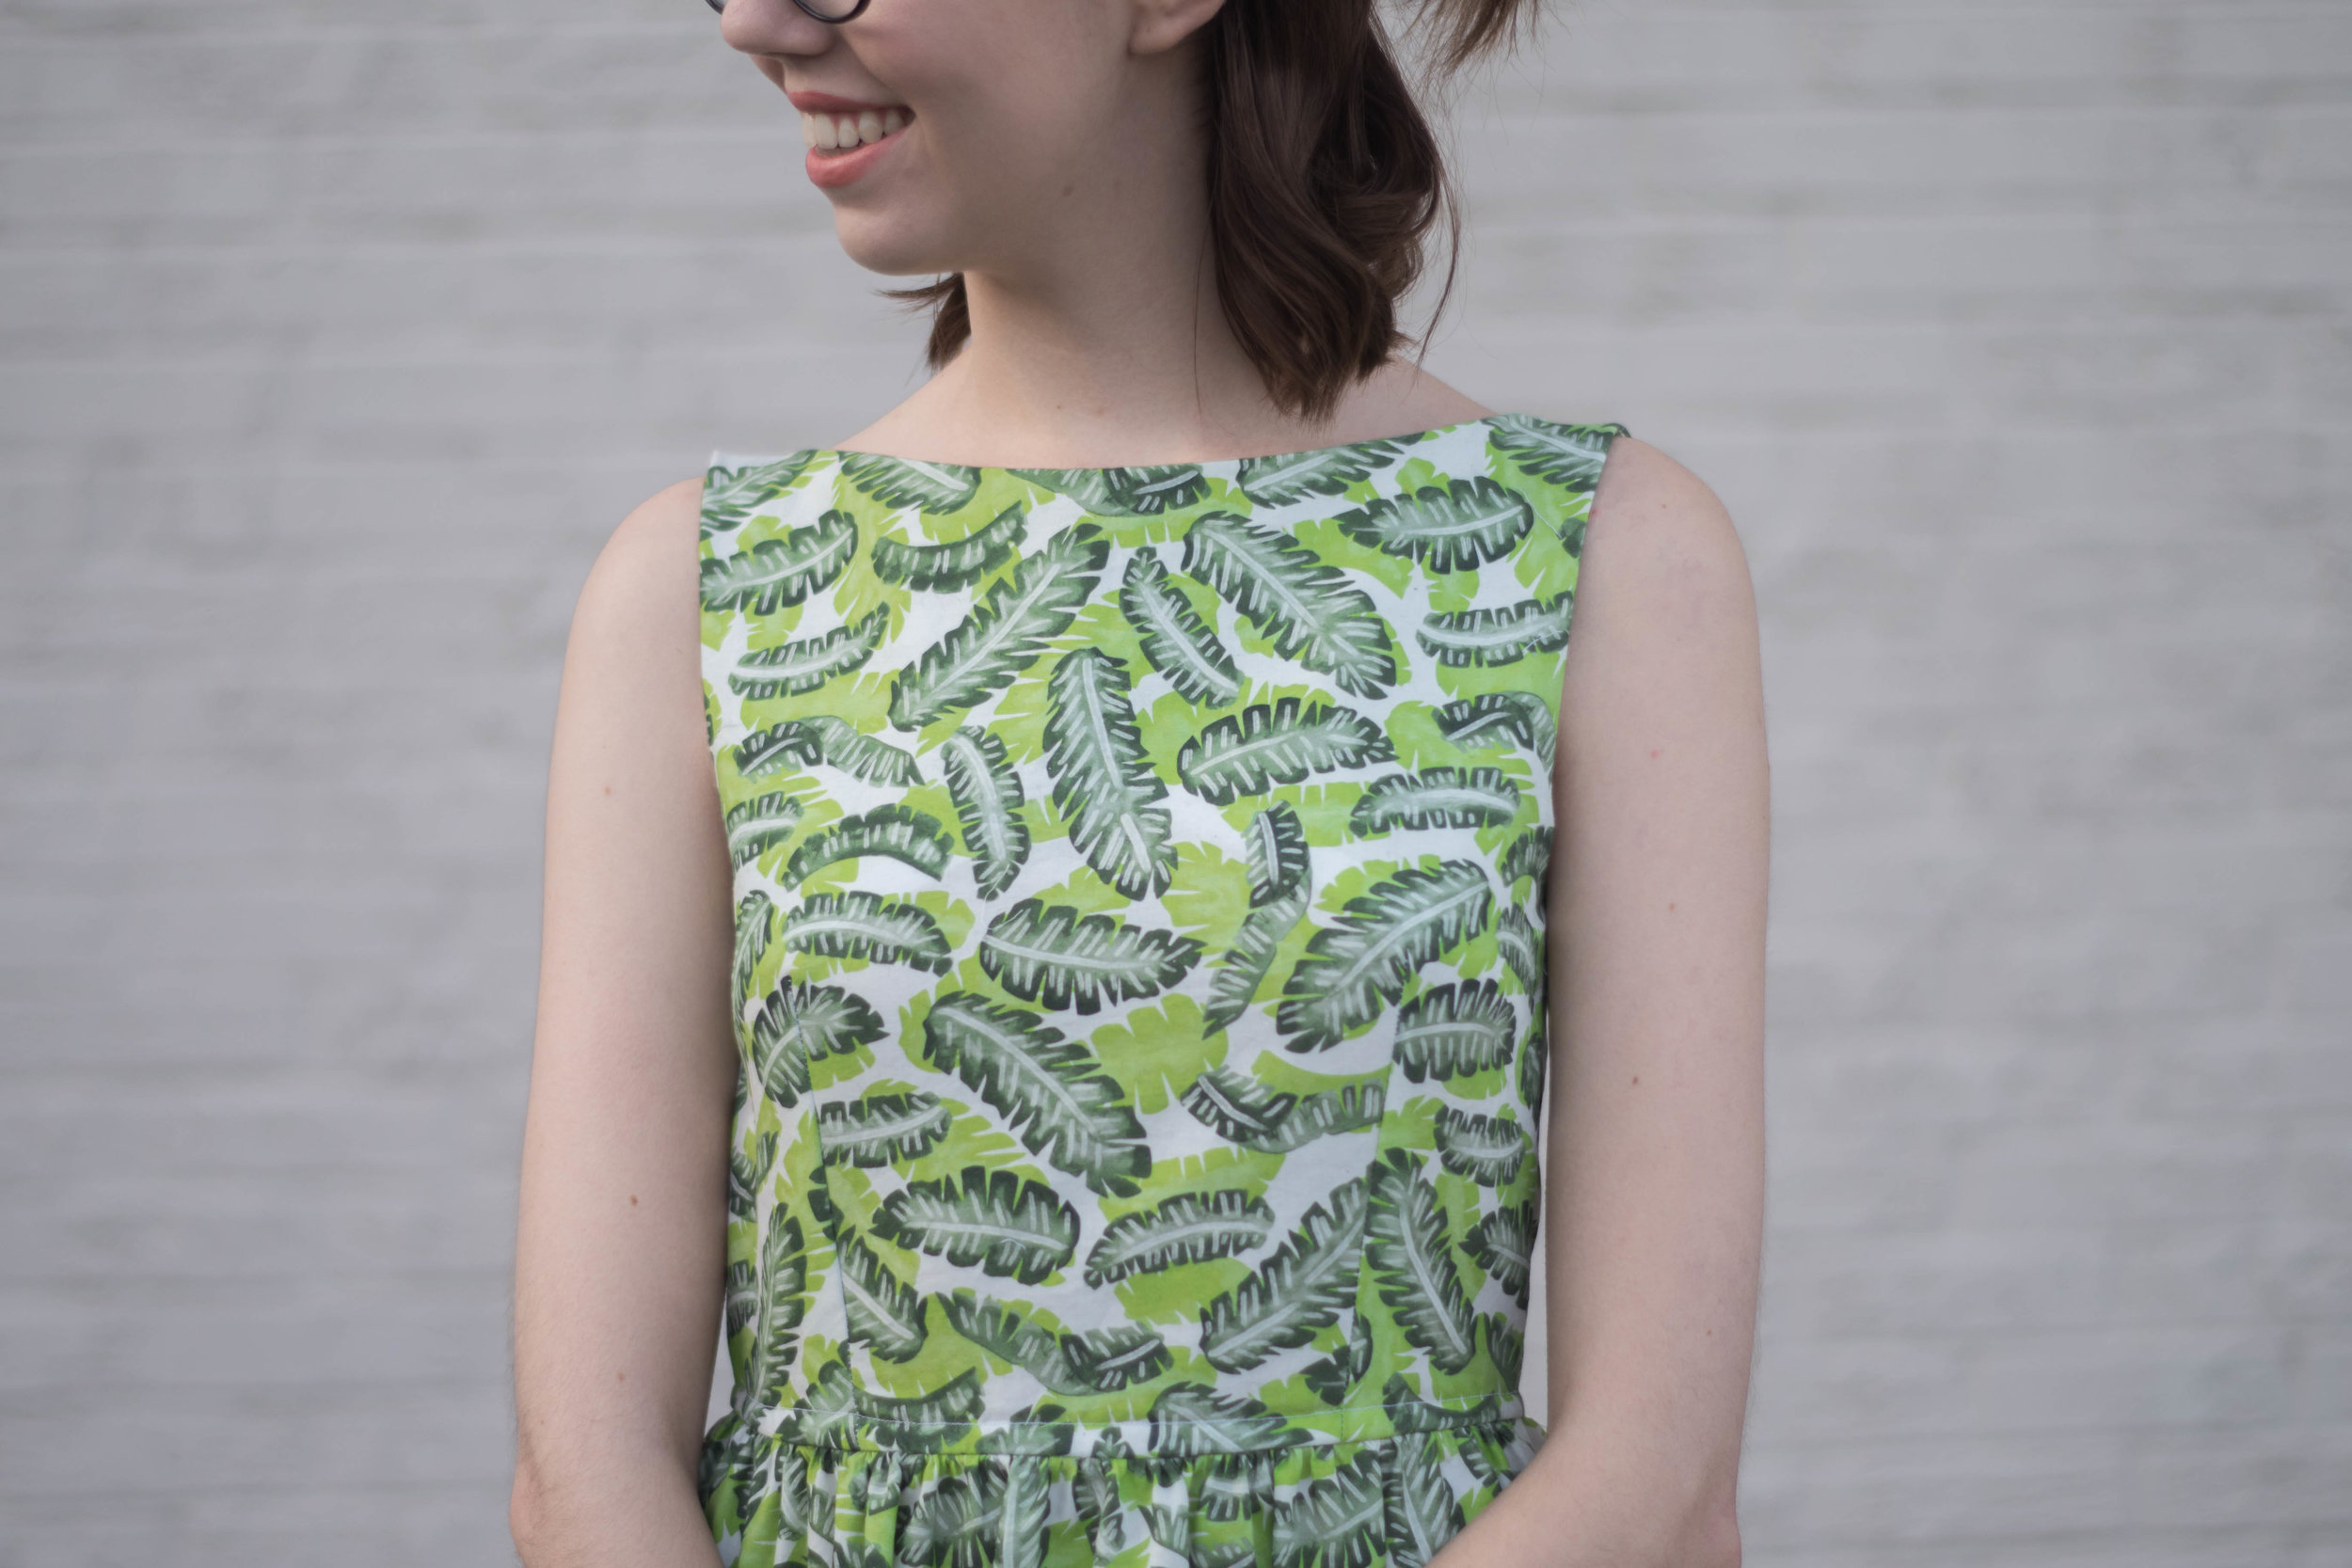 Considering adding a boatneck to your next sewing project? This tutorial will walk you through the steps of modifying a pattern you already have to do the trick! Don't have a pattern in mind? I have a great recommendation for a FREE dress pattern to get you started.